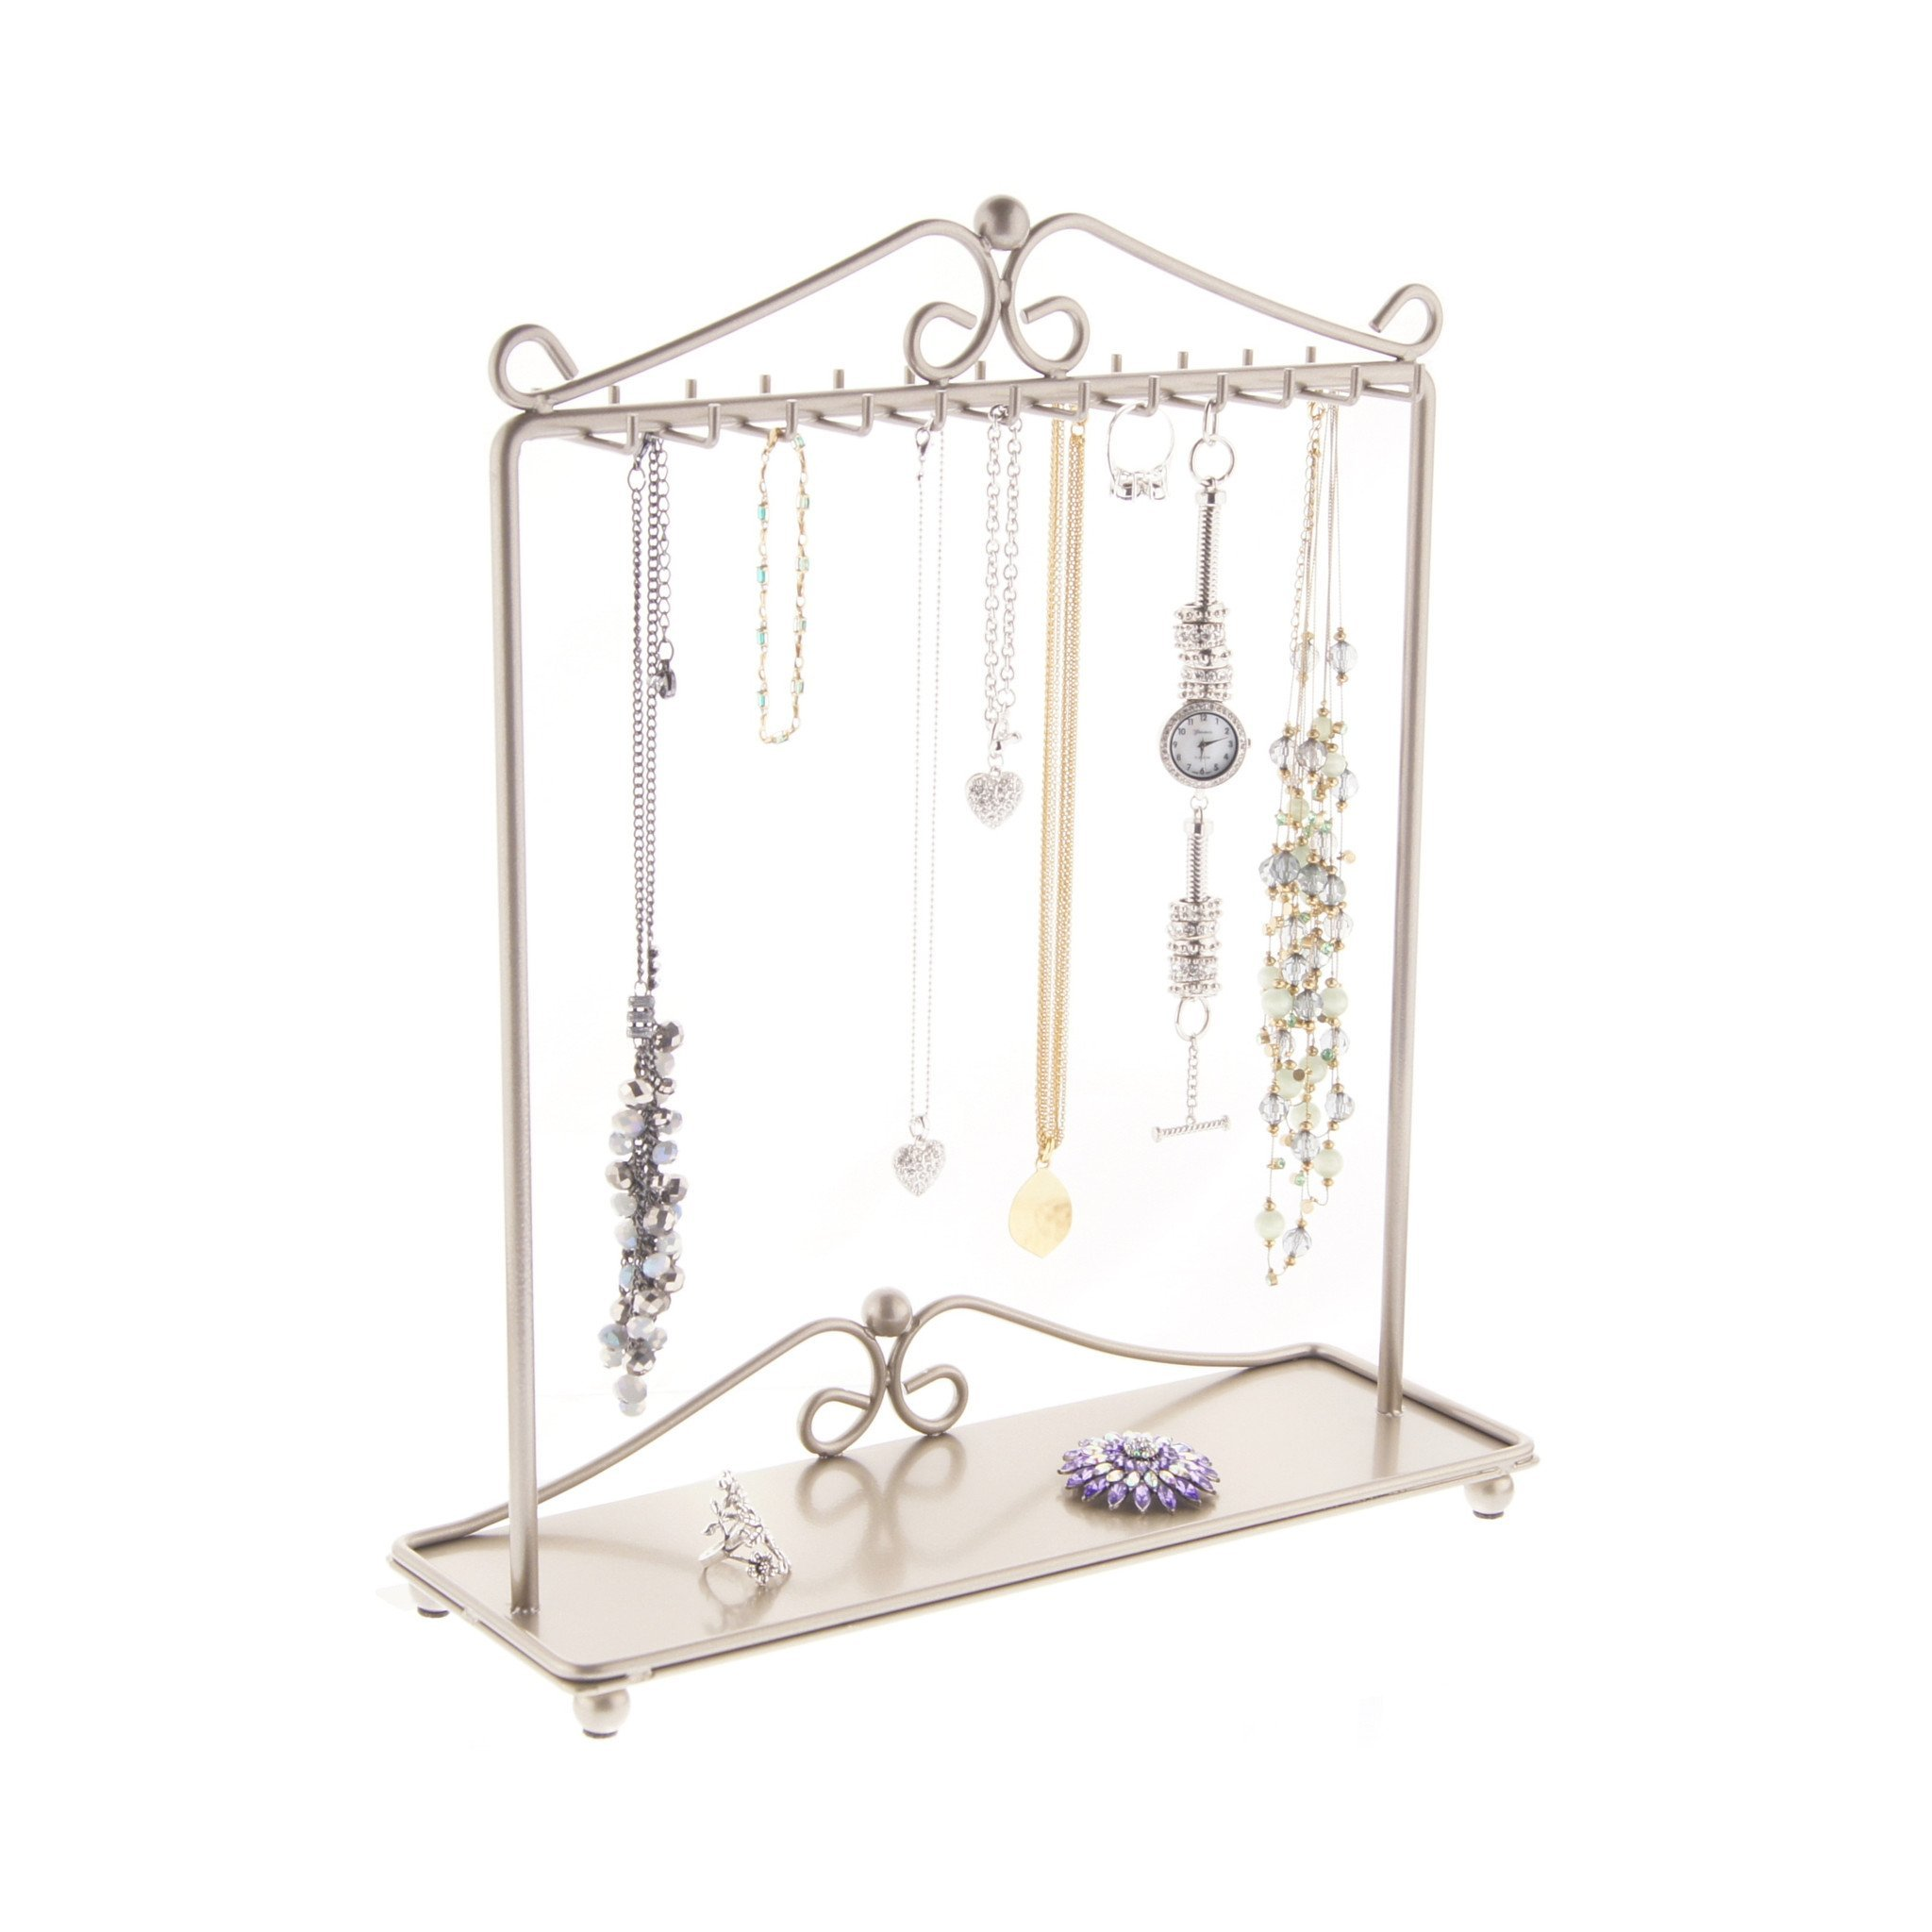 Necklace Holder Display Stand Jewelry Organizer Tree Bracelet Storage Rack with Tray, Calla Satin Nickel Silver